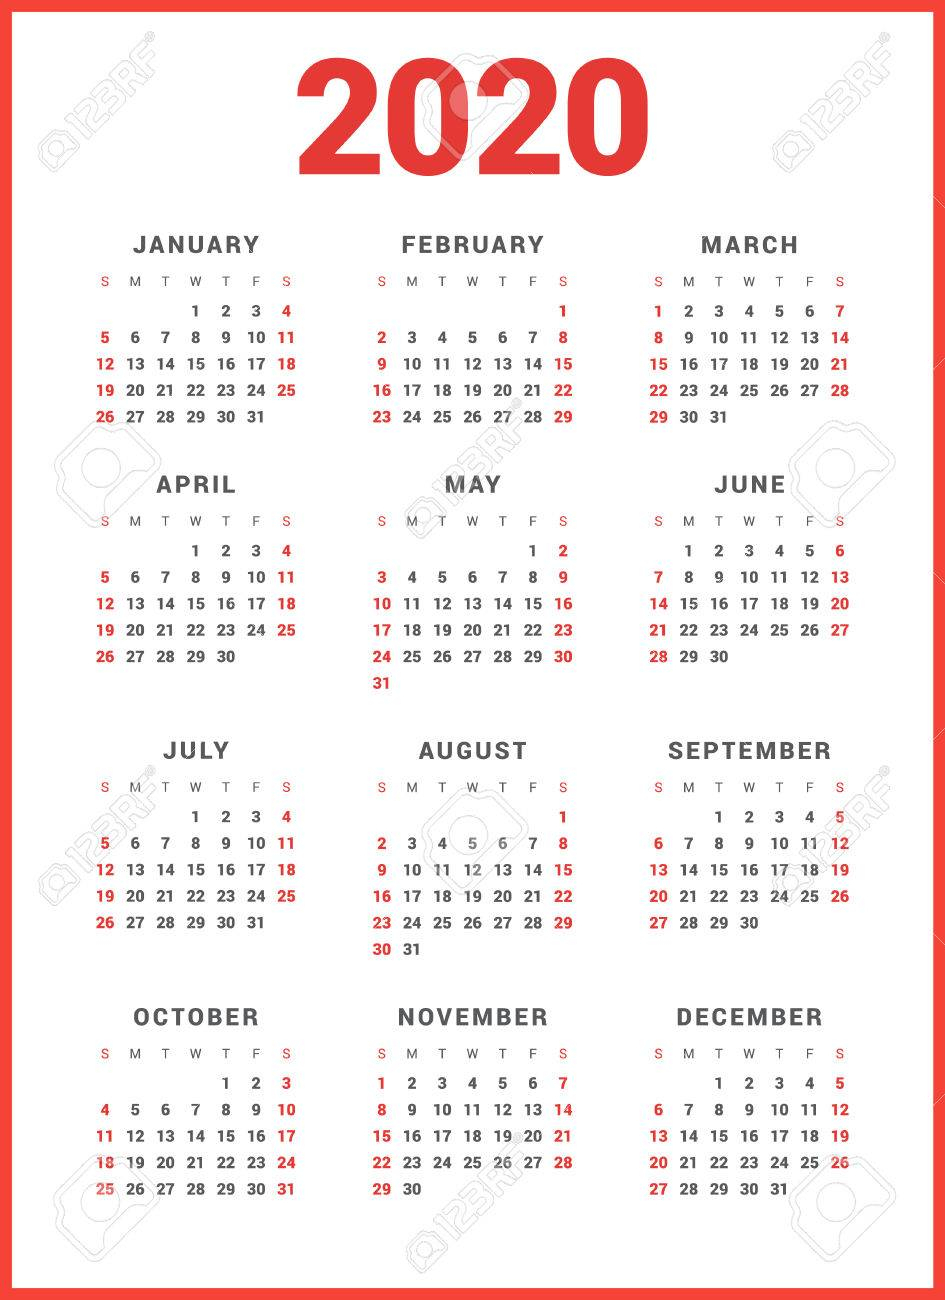 Calendar For 2020 Year On White Background. Week Starts Sunday intended for 2020 Monday Through Sunday Calendar Template